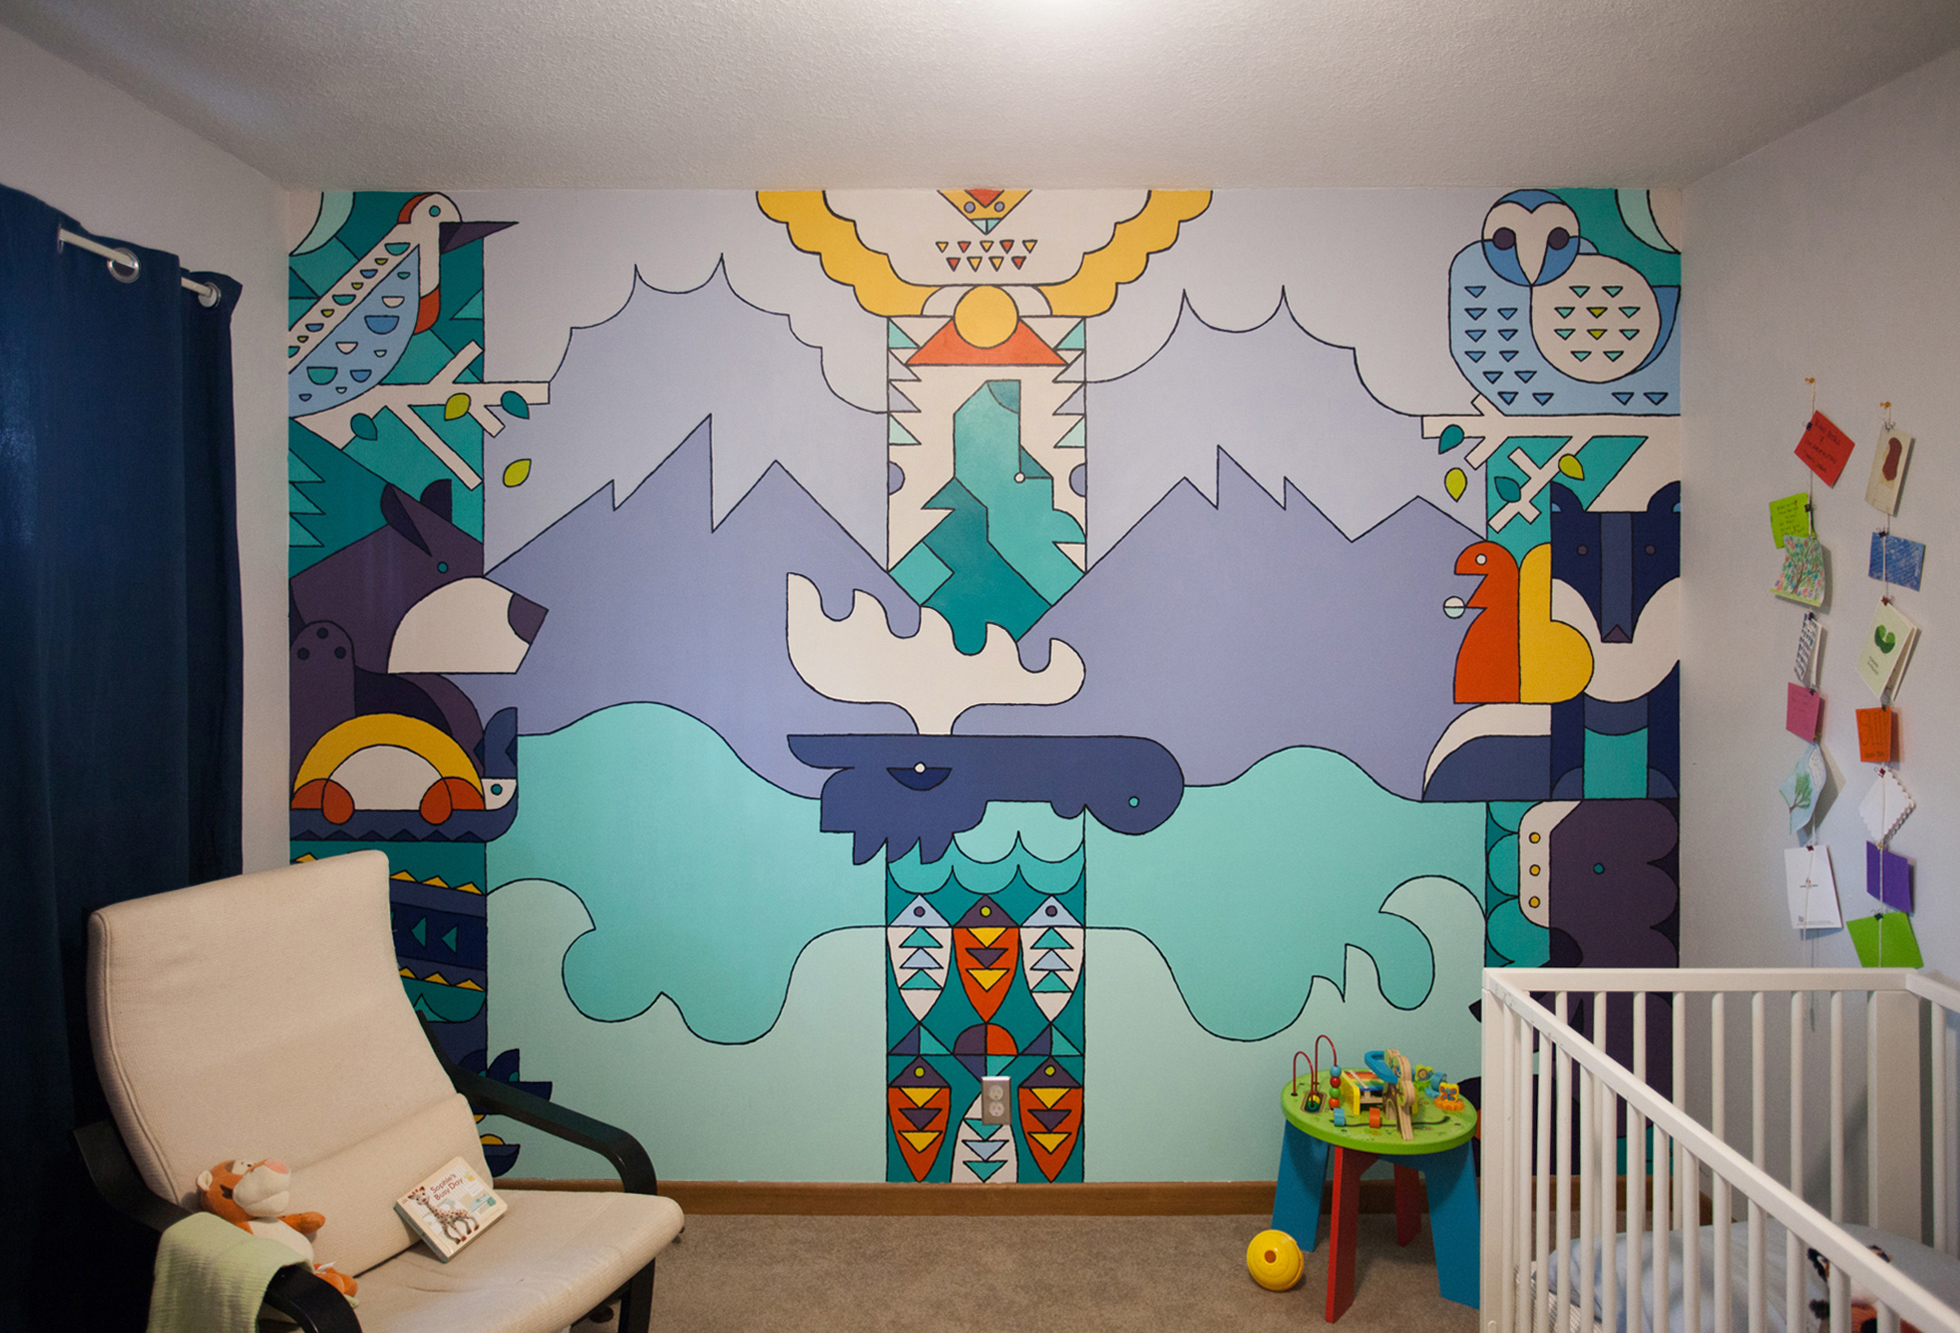 Edith-Pearl-Outlaw-Mural-Overall.jpg